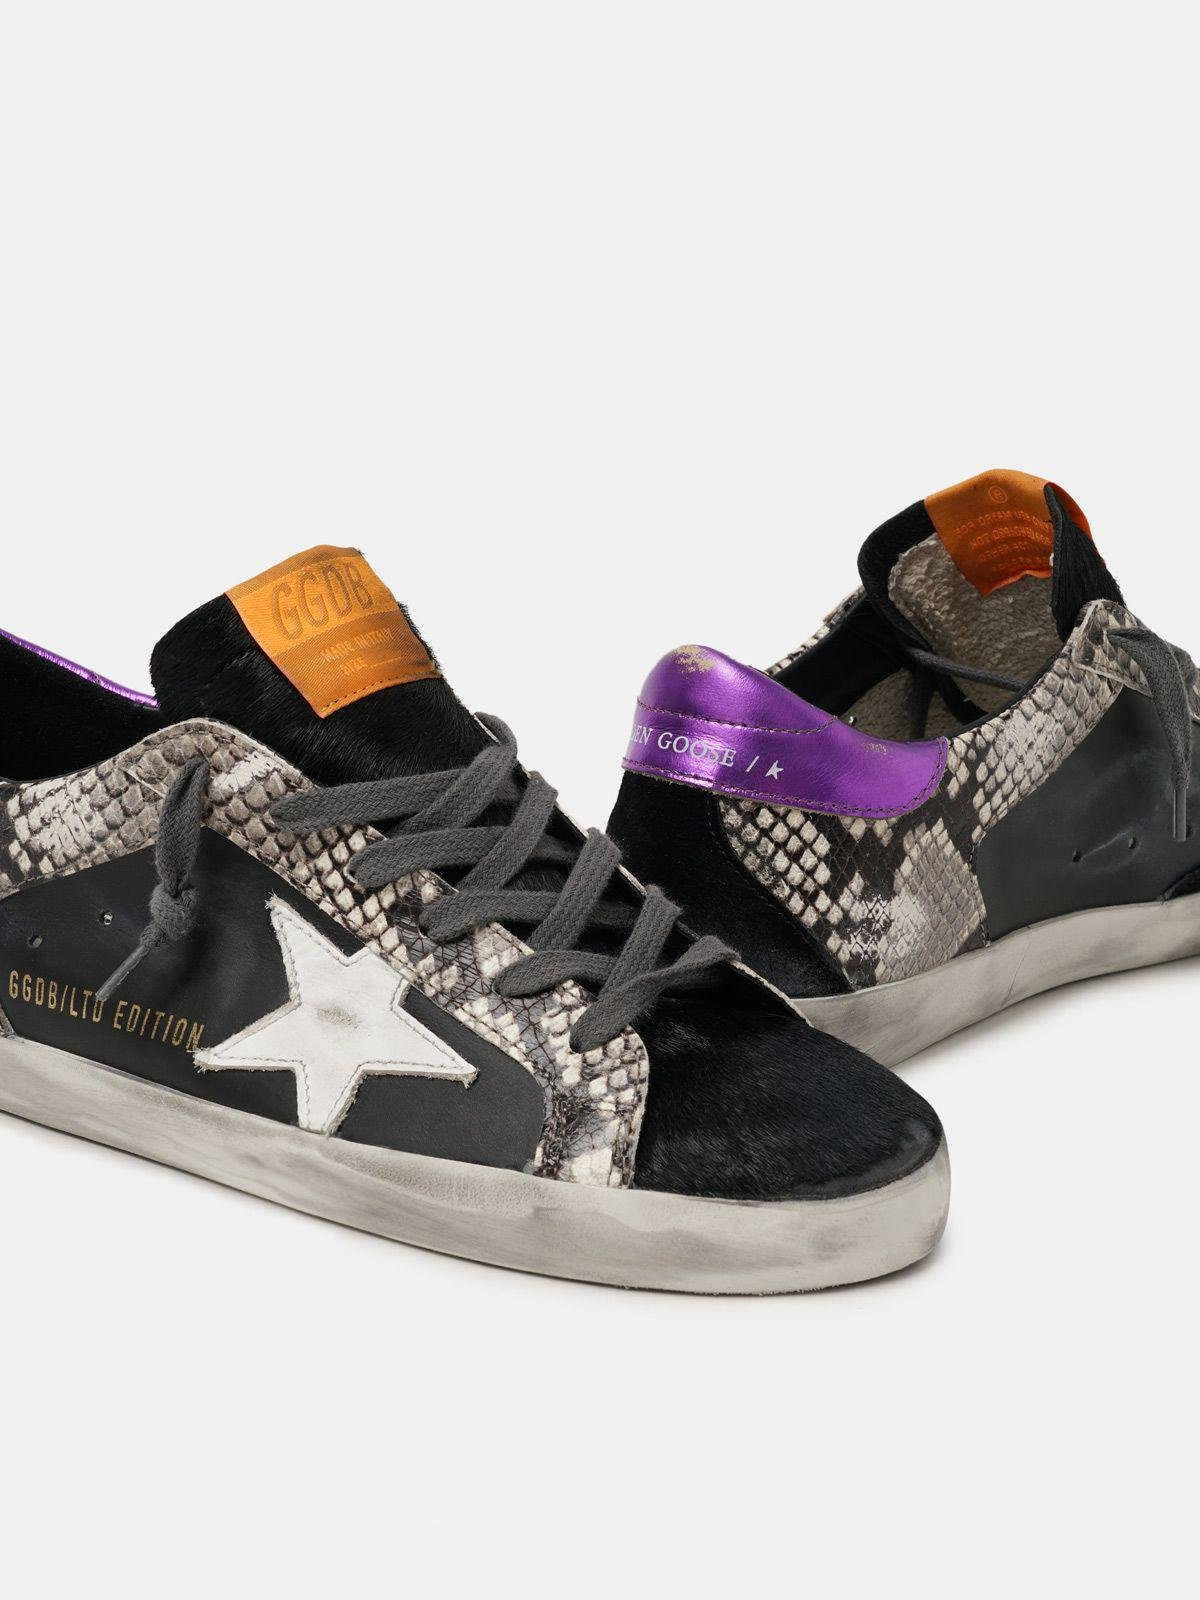 Women's Limited Edition LAB snake-print Super-Star sneakers with purple heel tab 3